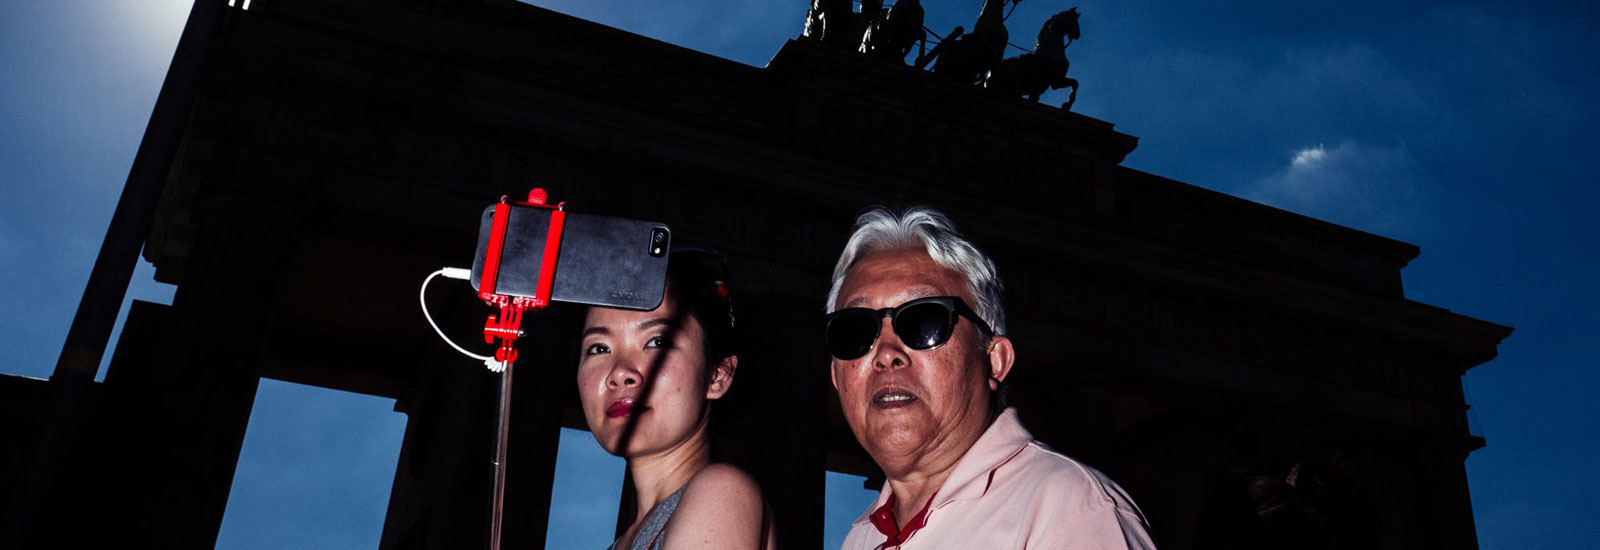 Asian Selfie, aus der Serie 'People at the Gate', Brandenburger Tor, 2016 (Detail) © Christian Schirrmacher